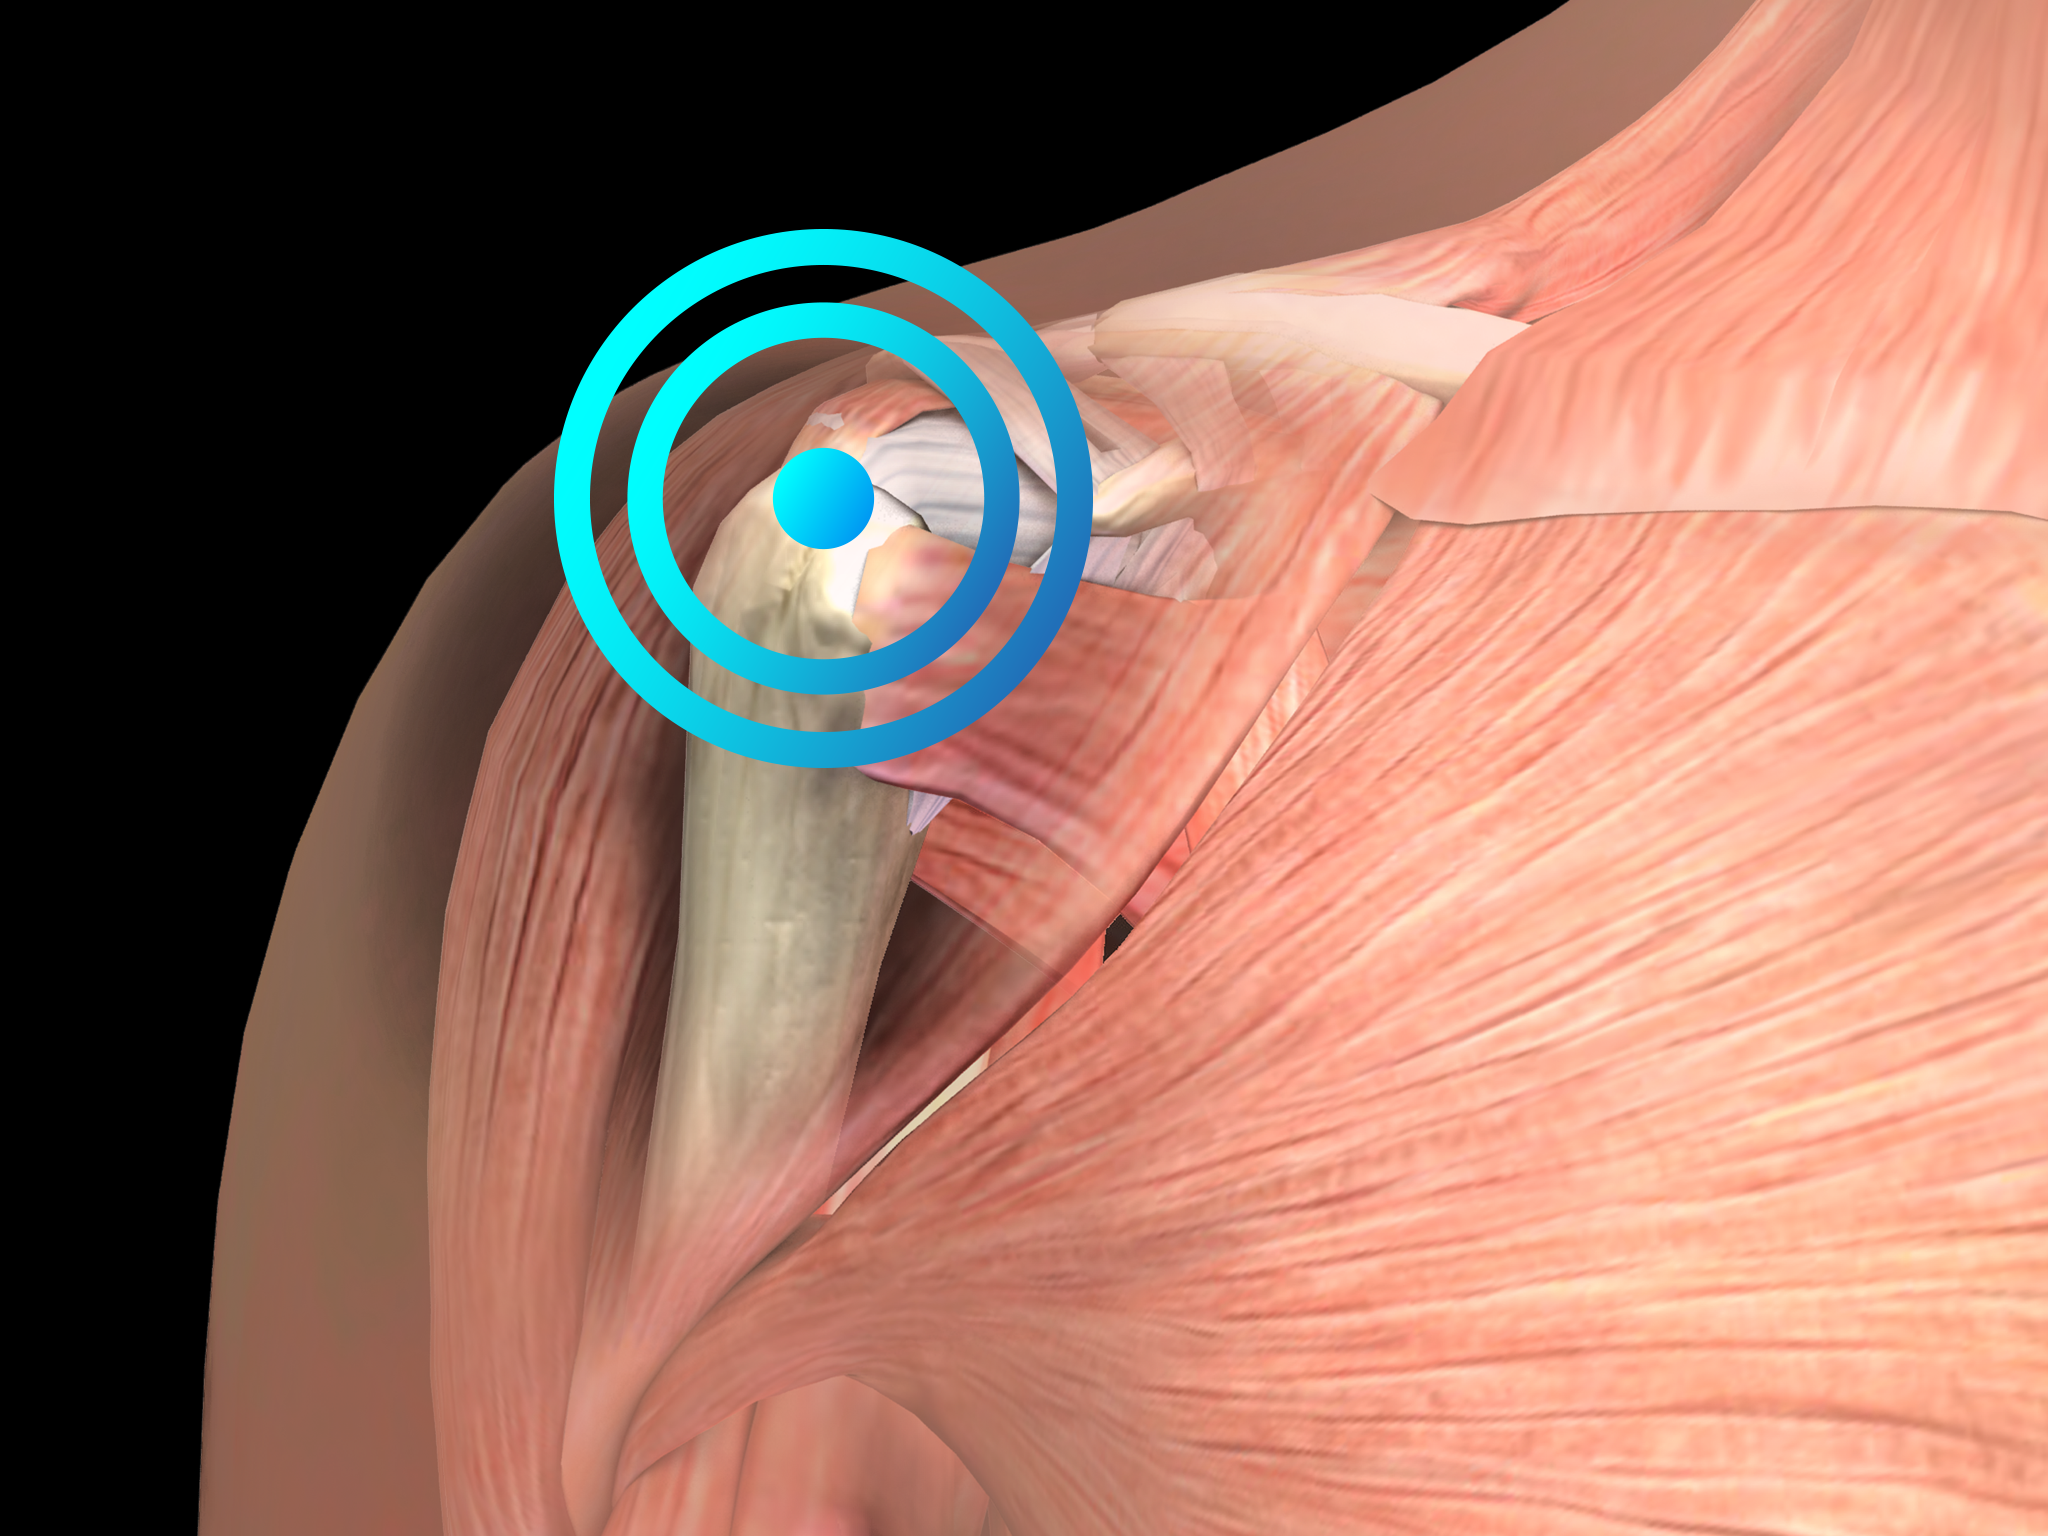 Calcifying tendinitis of the shoulder